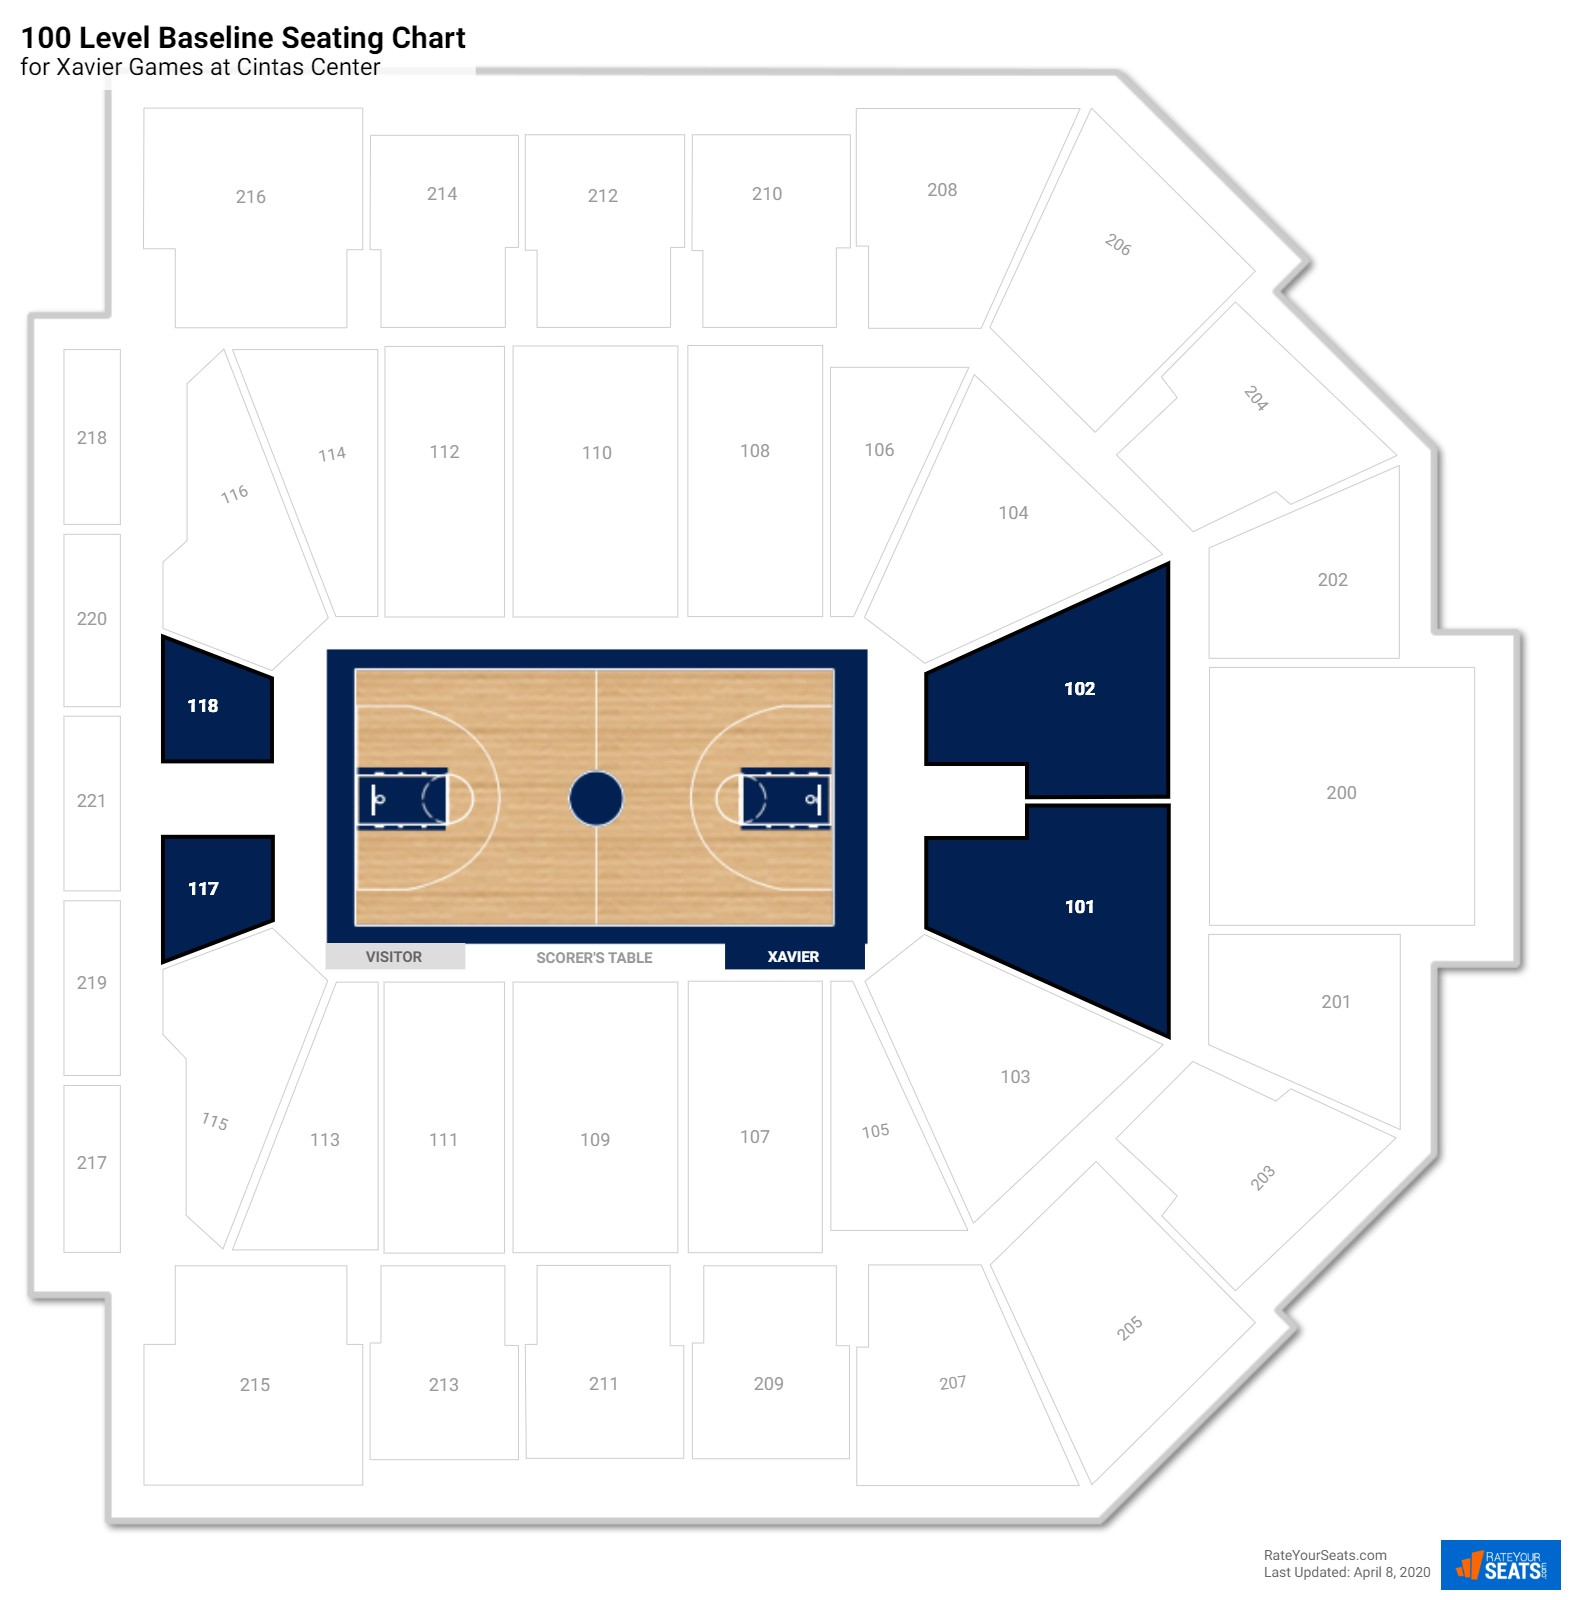 Cintas Center 100 Level Baseline Seating Chart